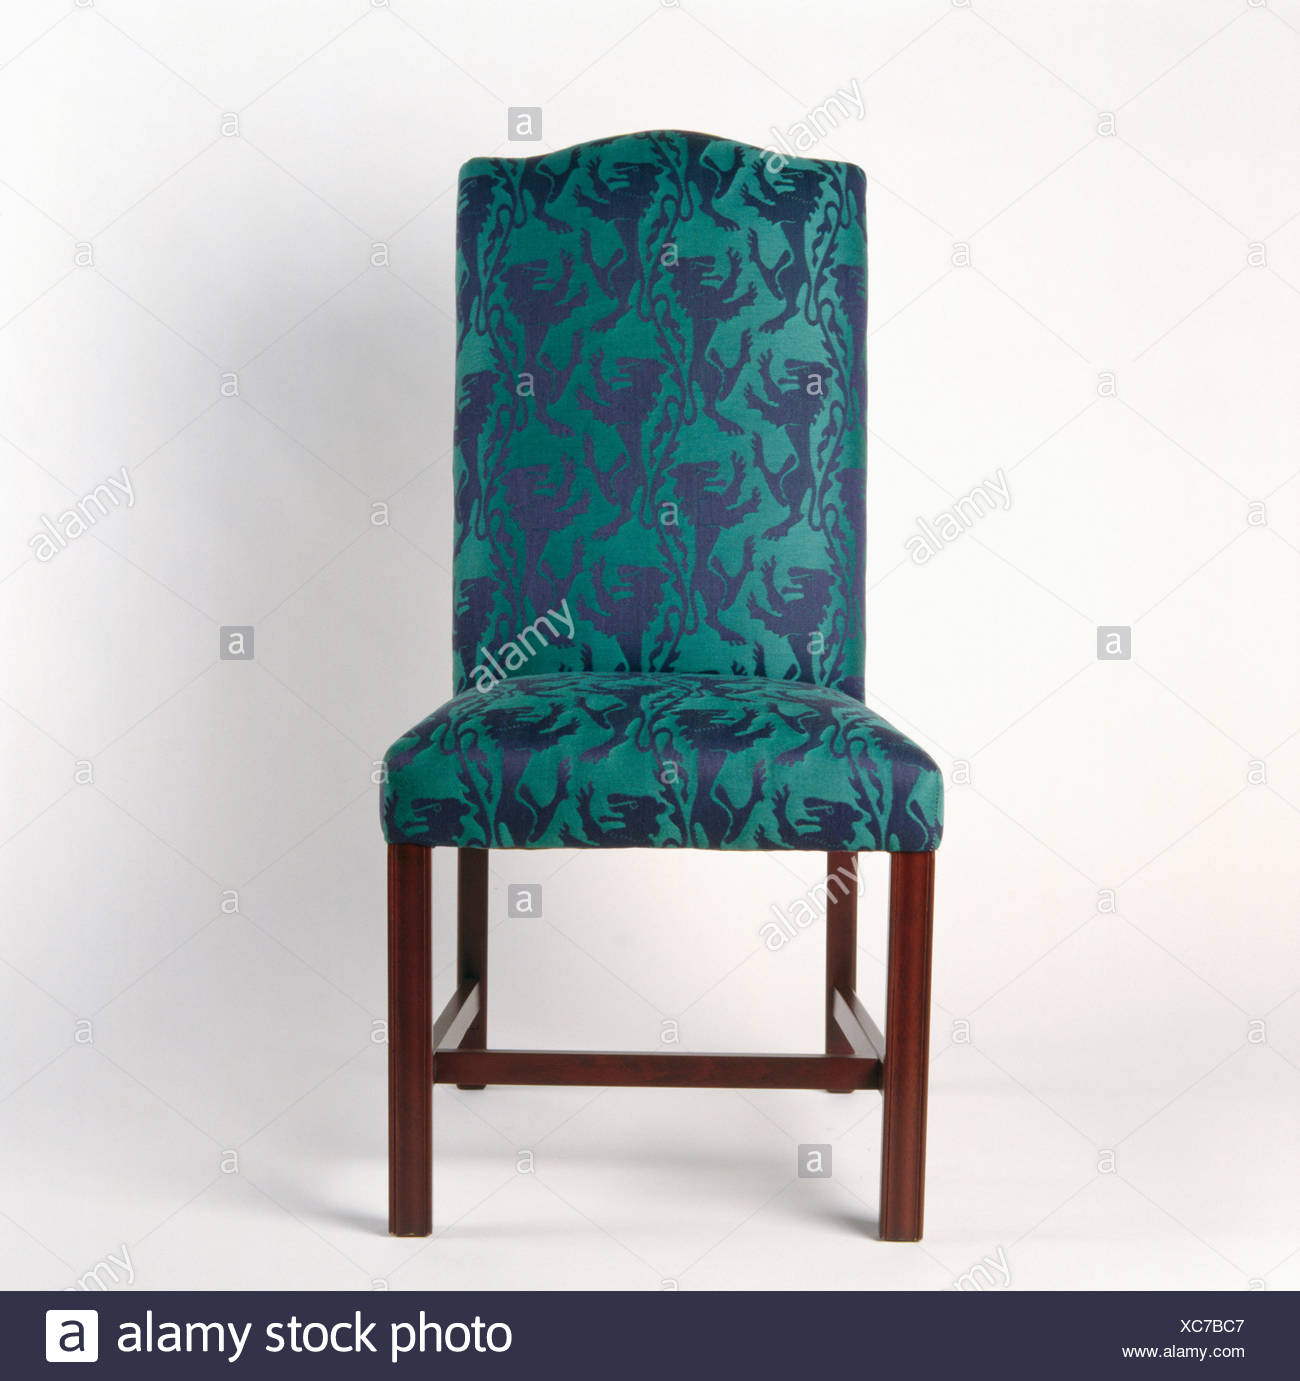 Close-up of green+blue upholstered chair - Stock Image